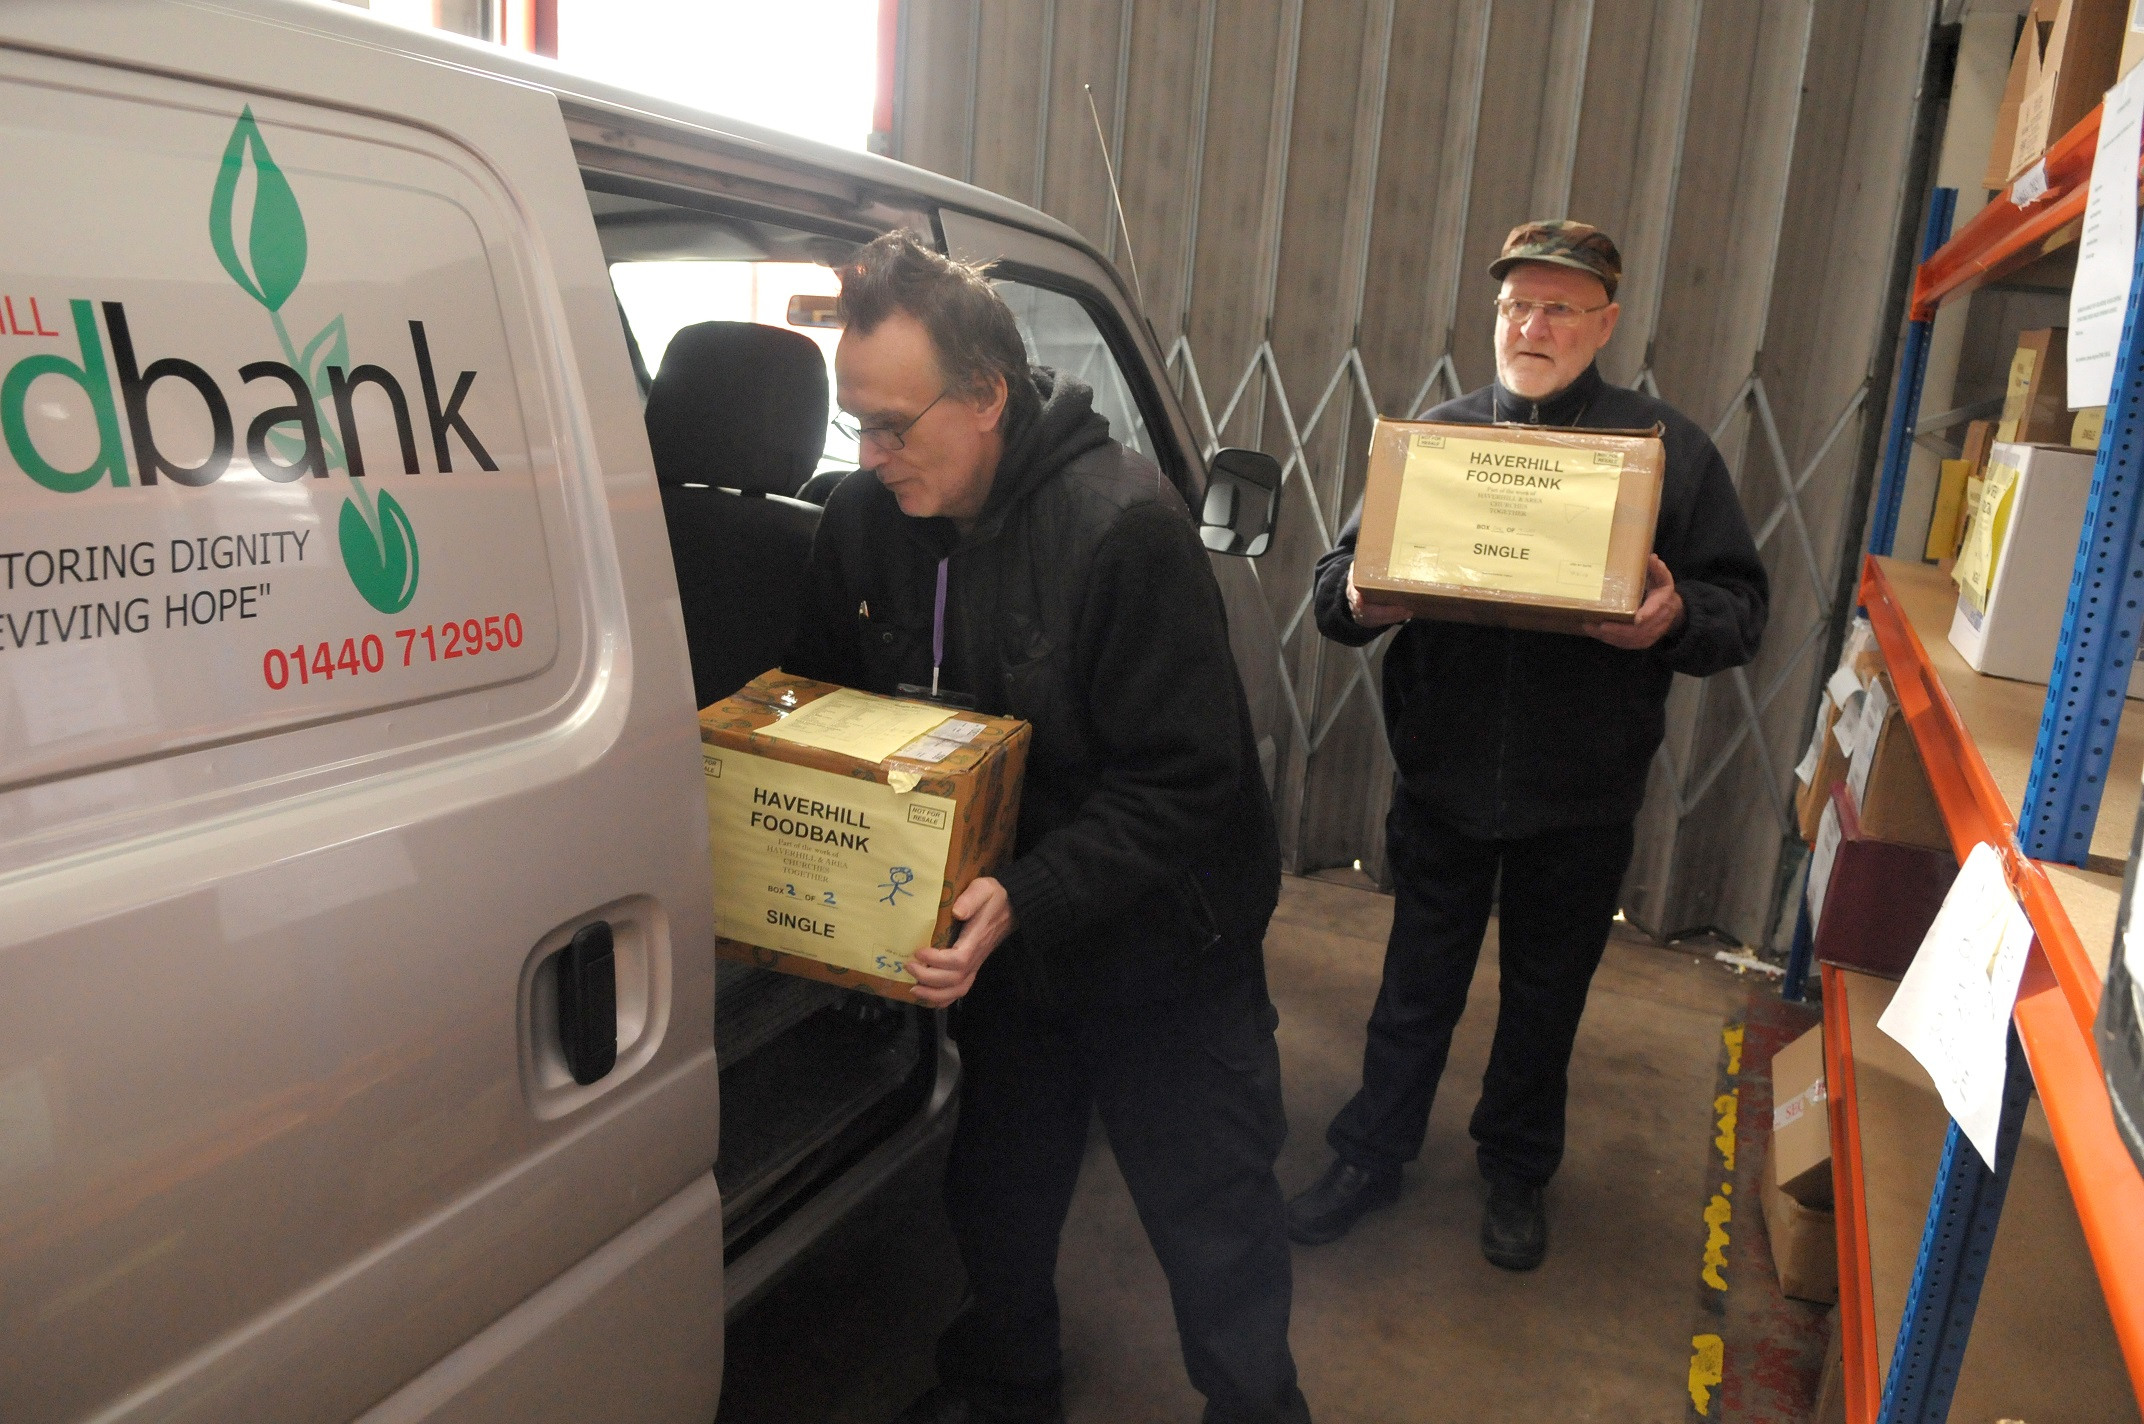 Suffolk - Volunteers helping out at the REACH Haverhill foodbank_smaller.jpg